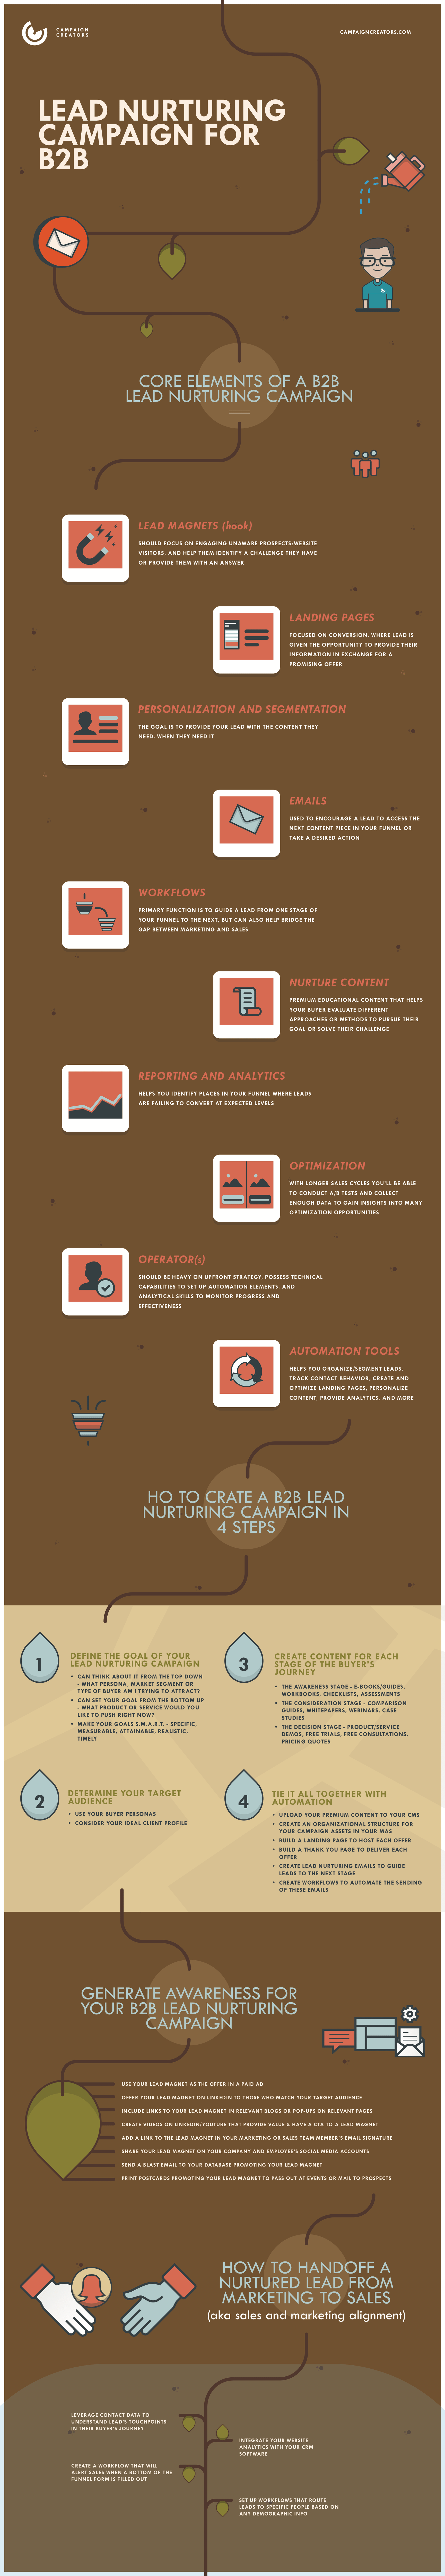 CC - Lead Nurturing Campaign for B2B - Lesson 7 Infographic